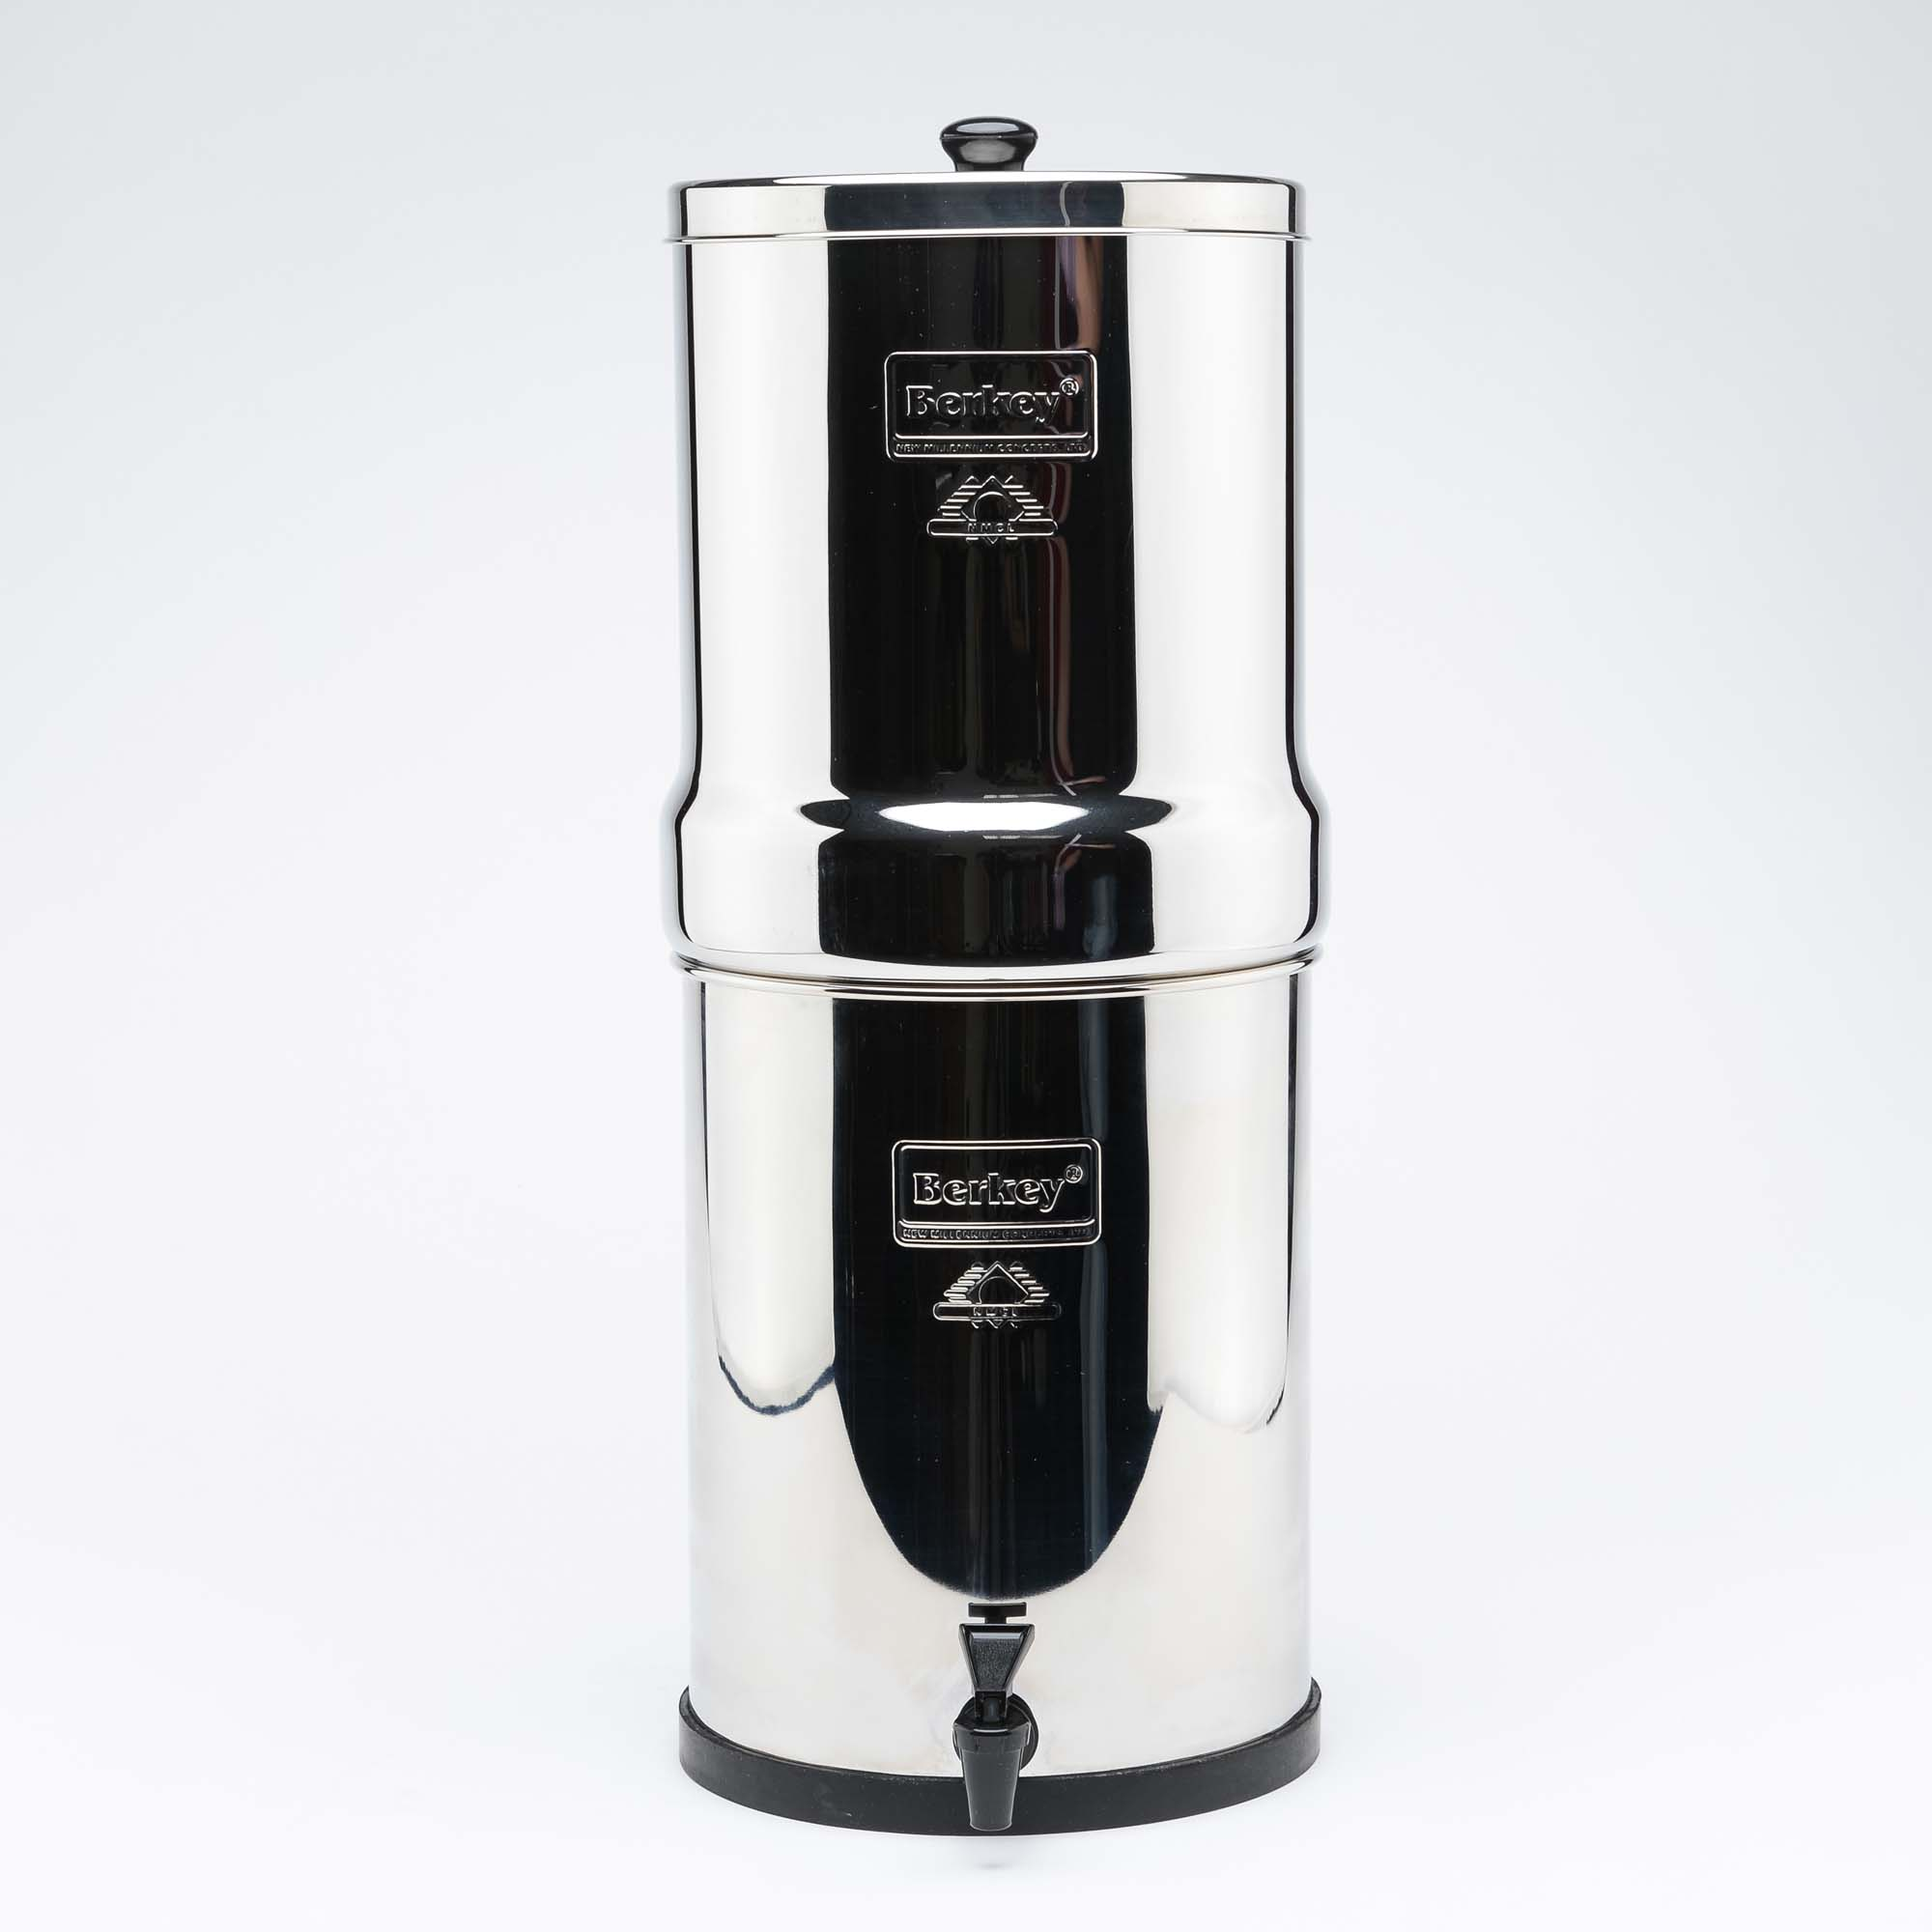 Berkey RB4X2-BB Royal Berkey 3.25 Gal. Water Purifier with 2 filters